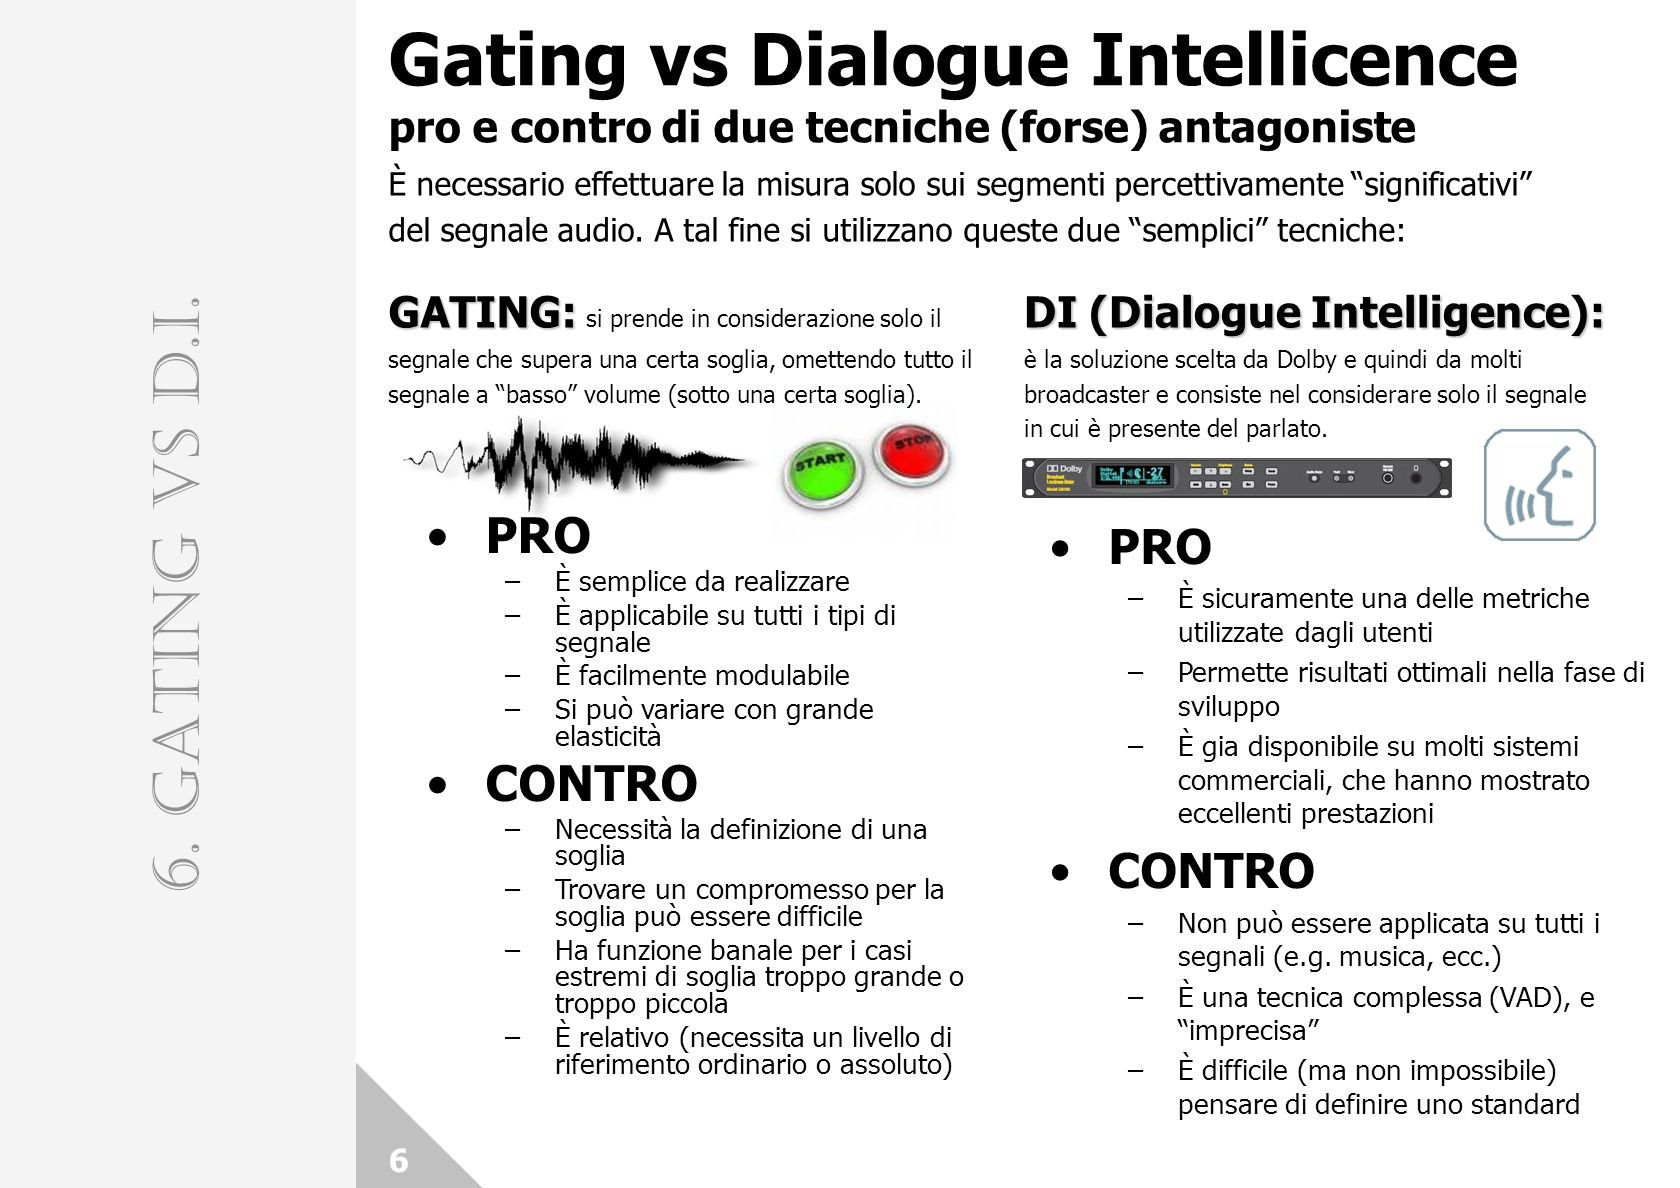 Gating vs Dialogue Intellicence